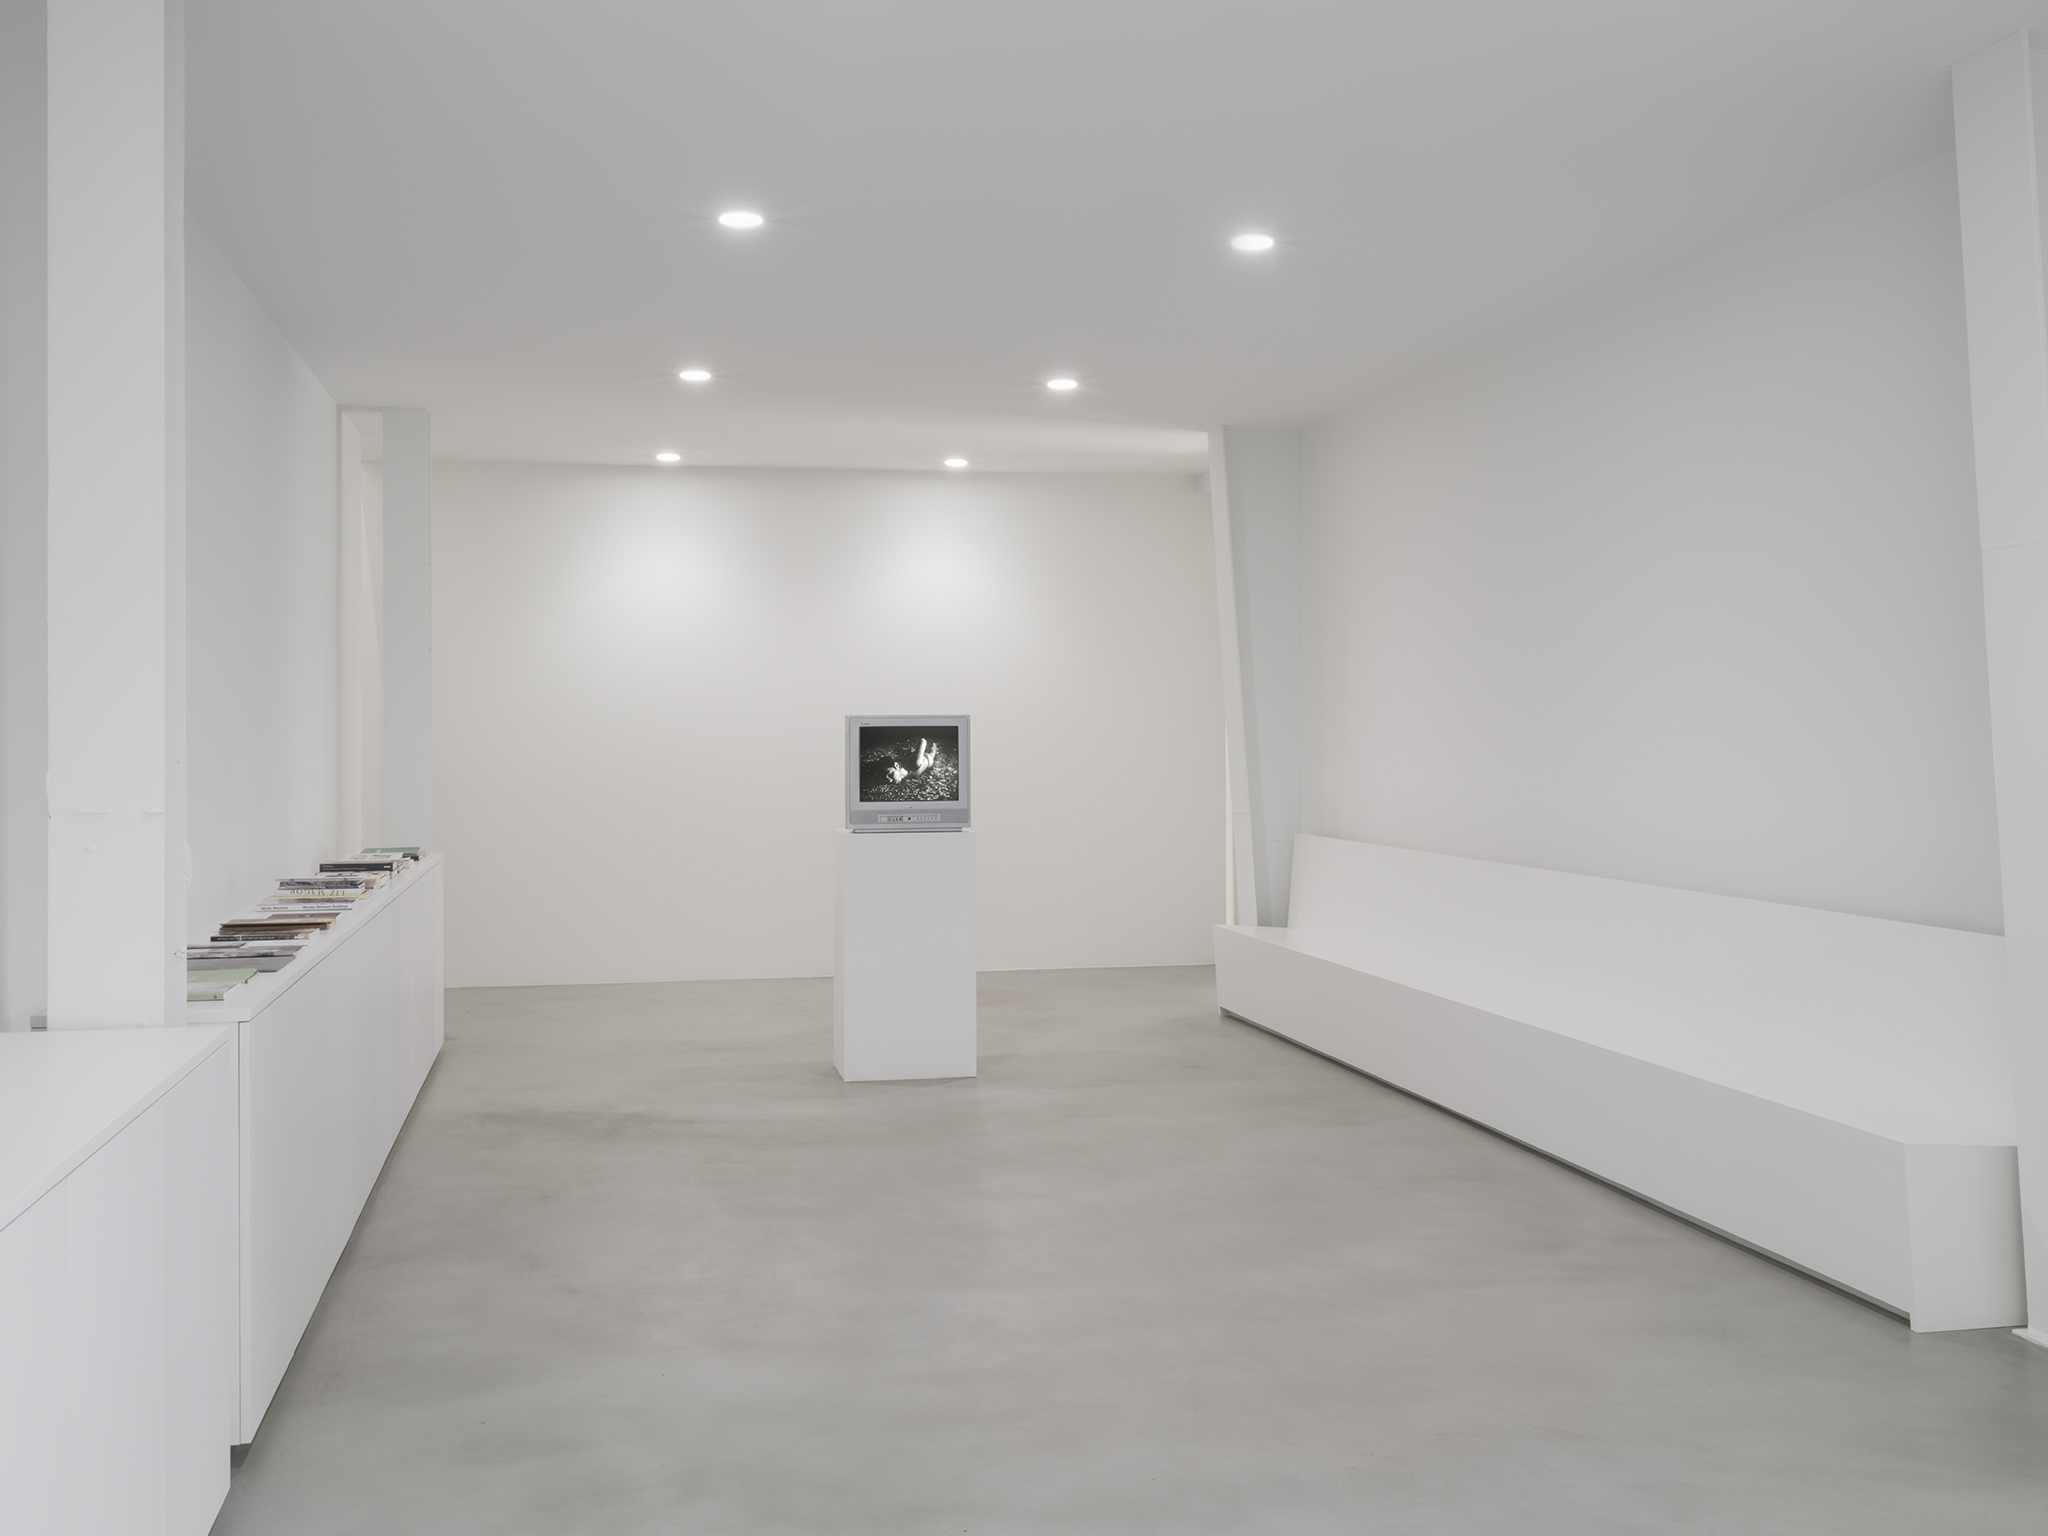 Chris Burden, Documentation of Selected Works 1971–74, 1971–1975, video, 34 minutes, 38 seconds by